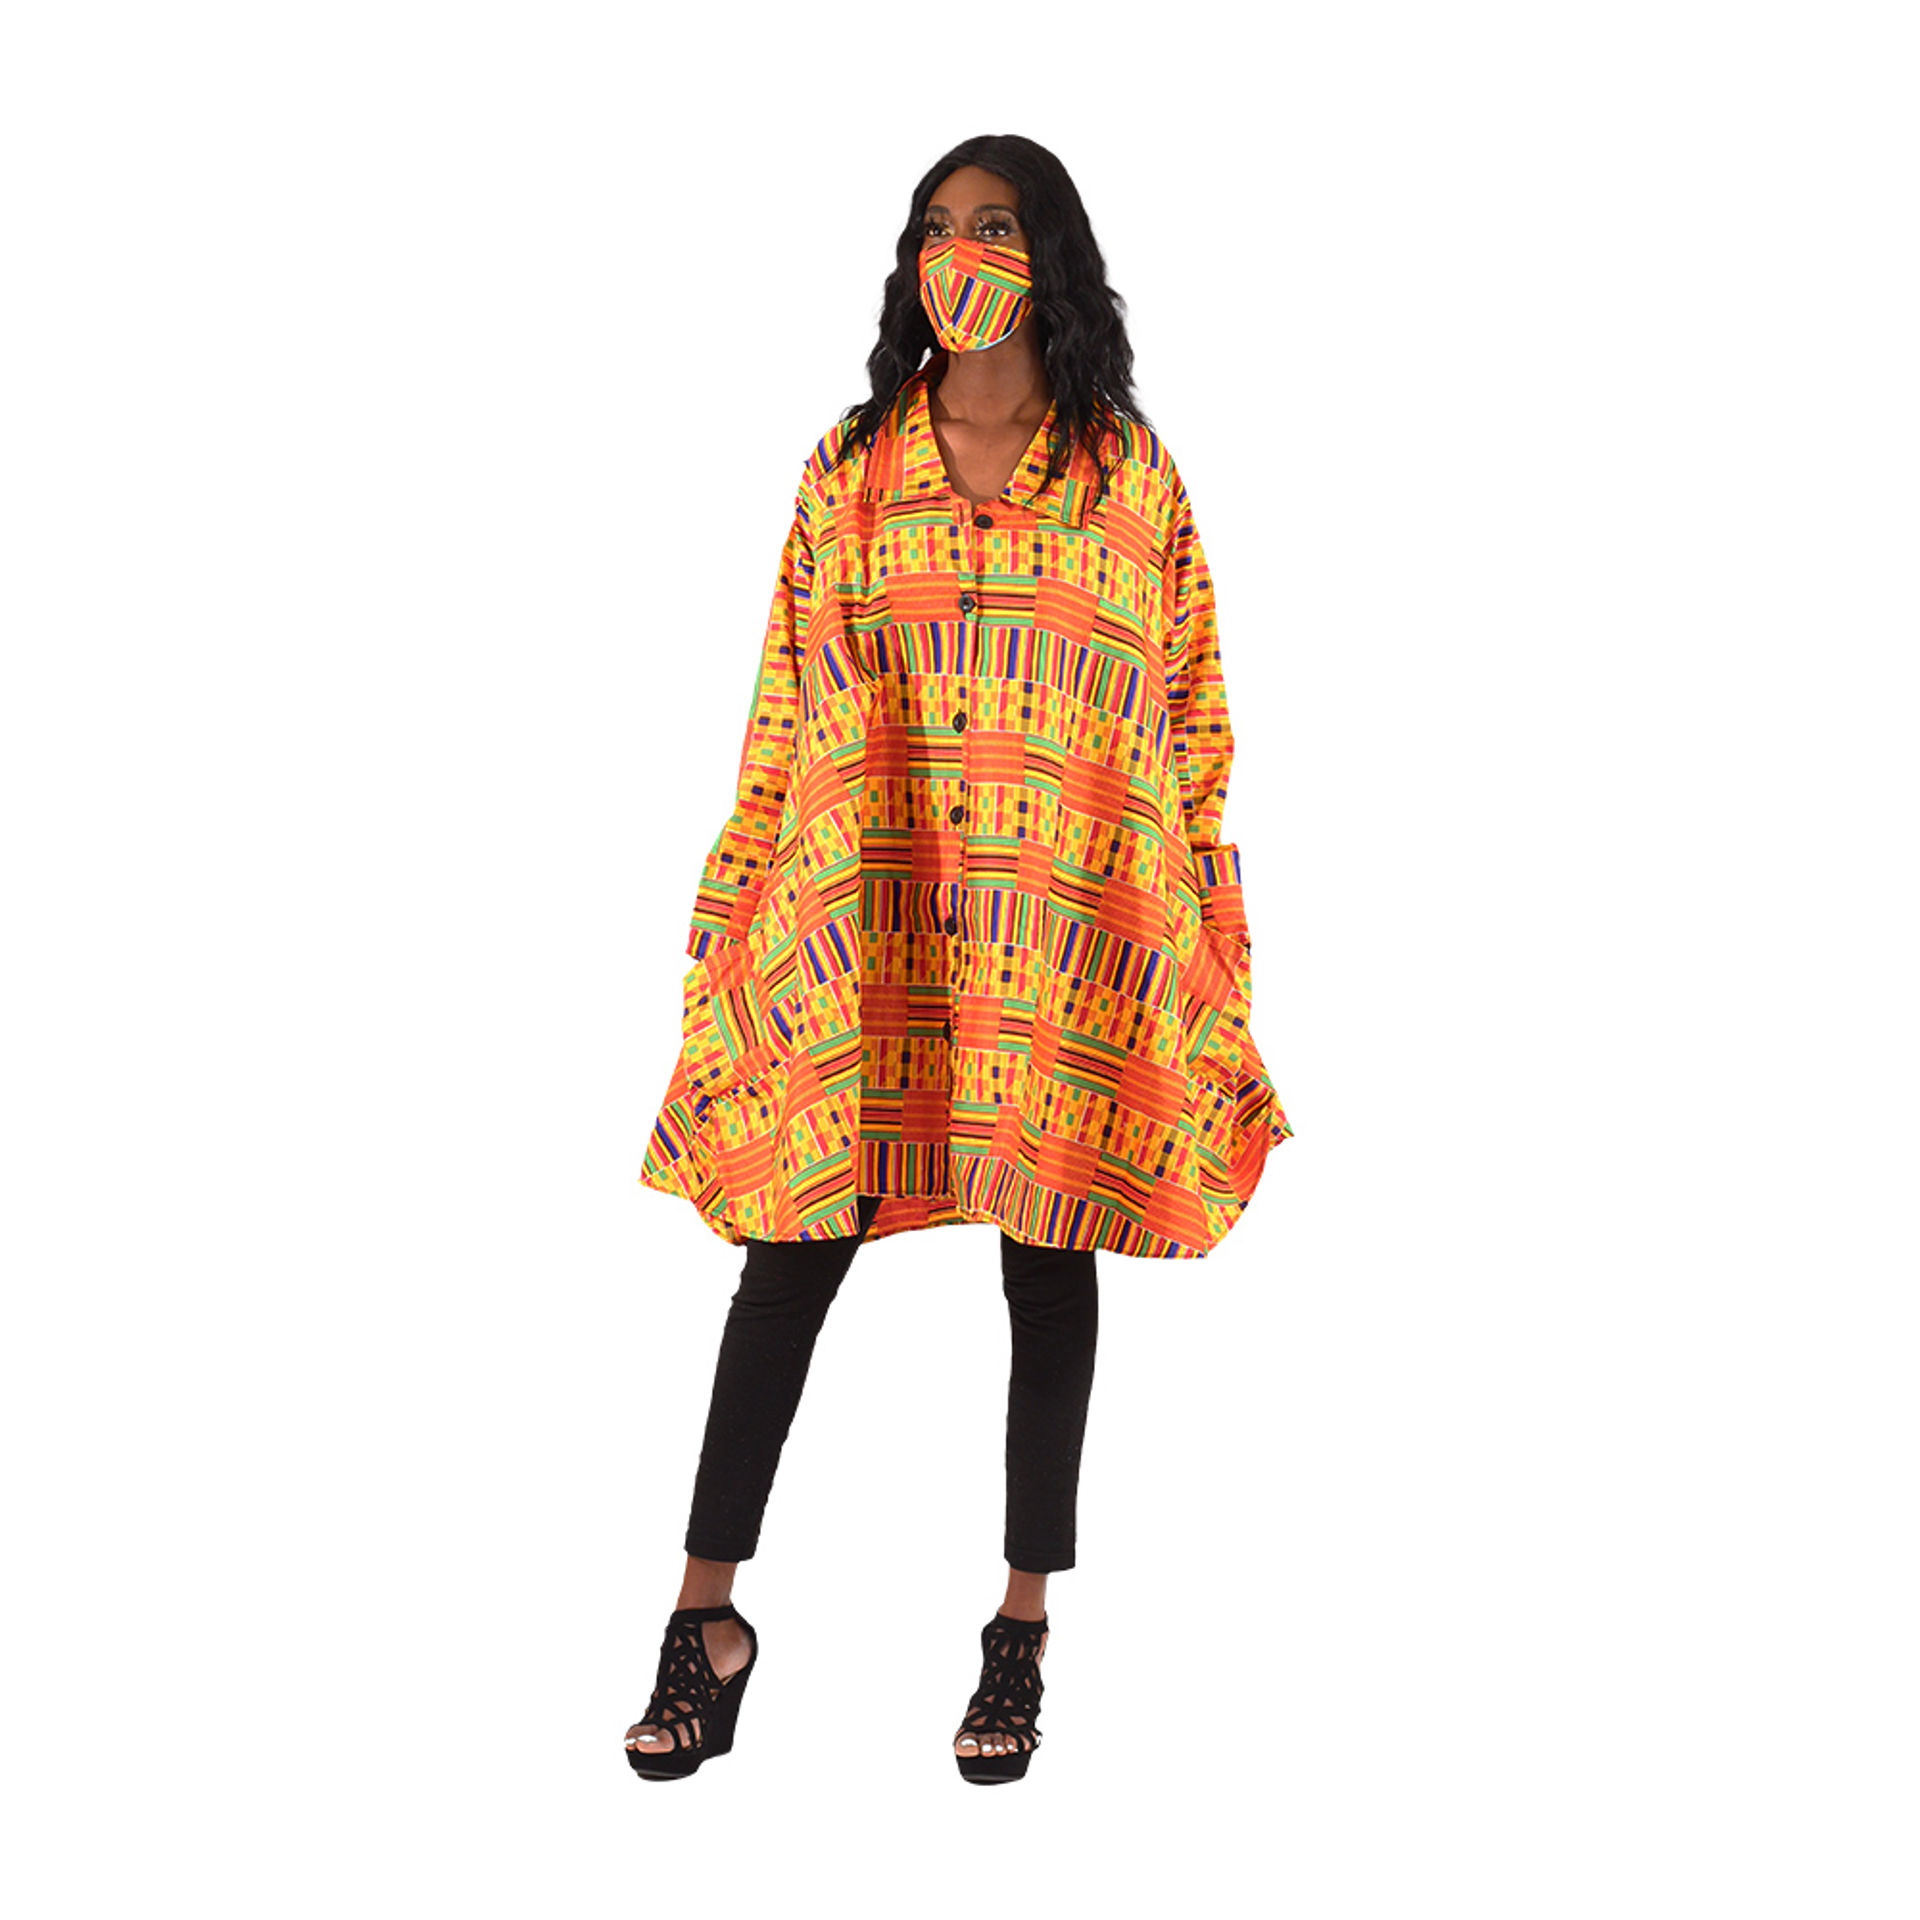 Picture of Kente #1 Smock with Mask